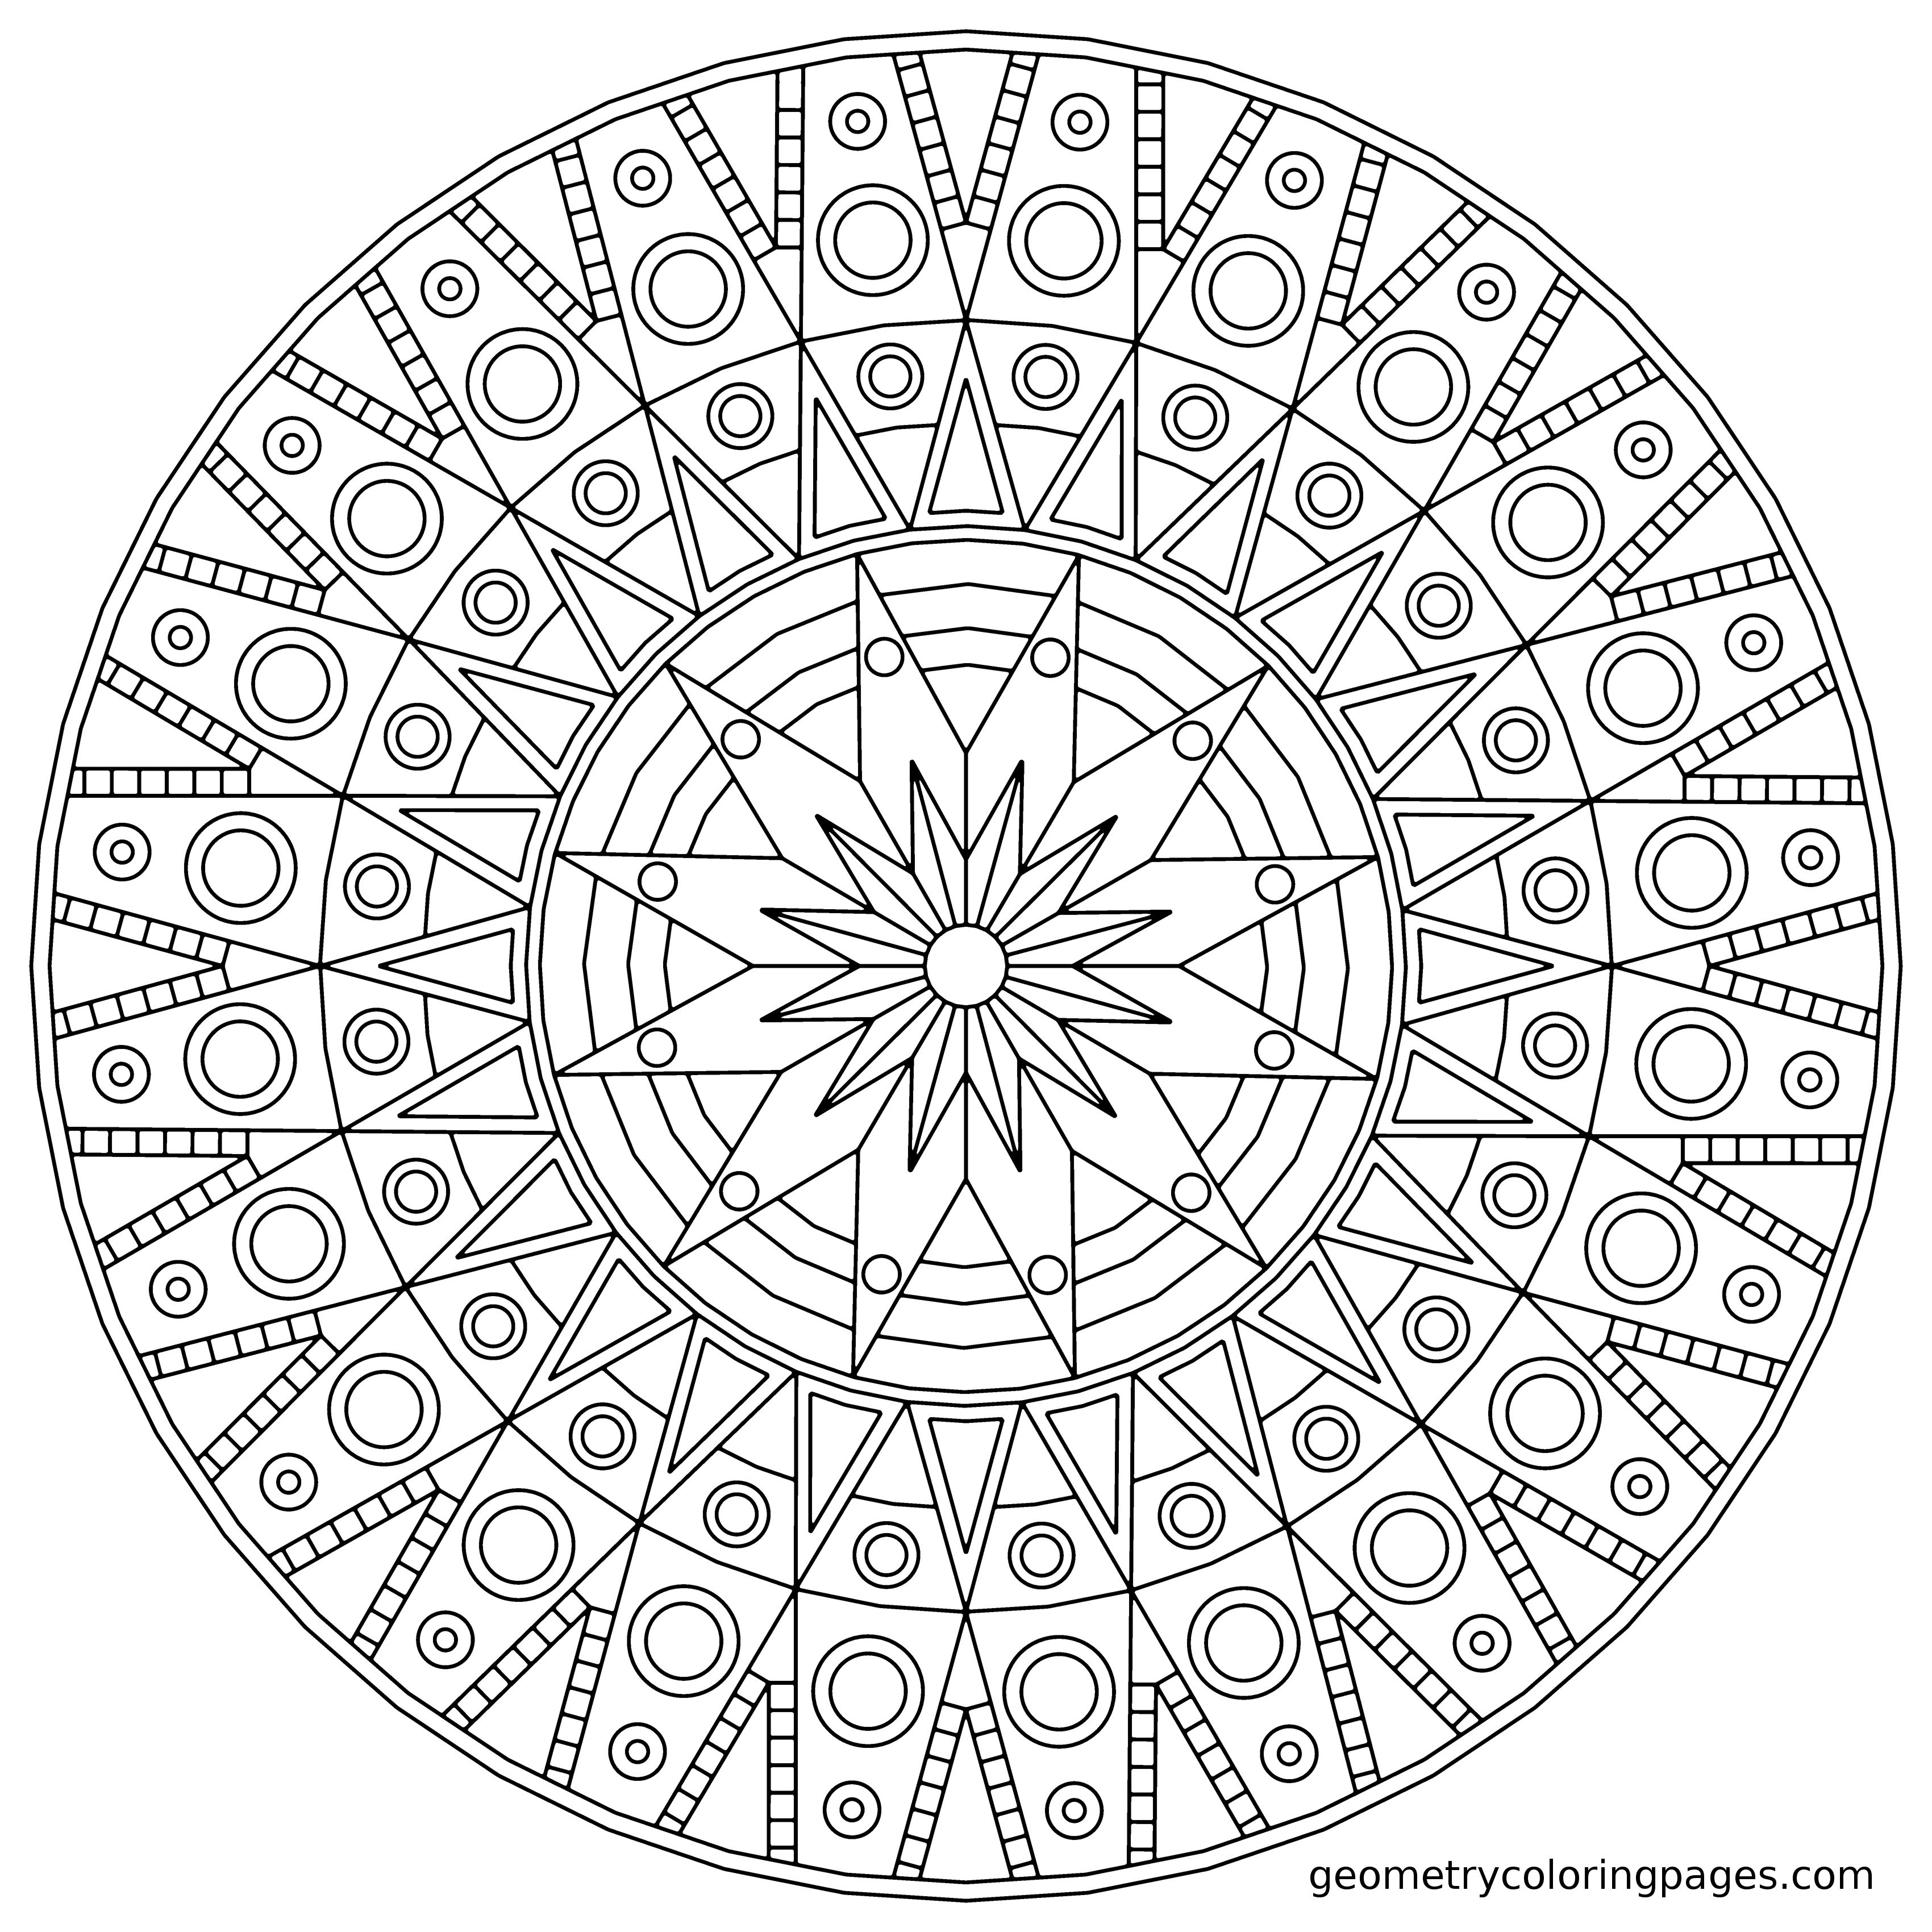 Mandala Coloring Page, Sundial from geometrycoloringpages.com ...